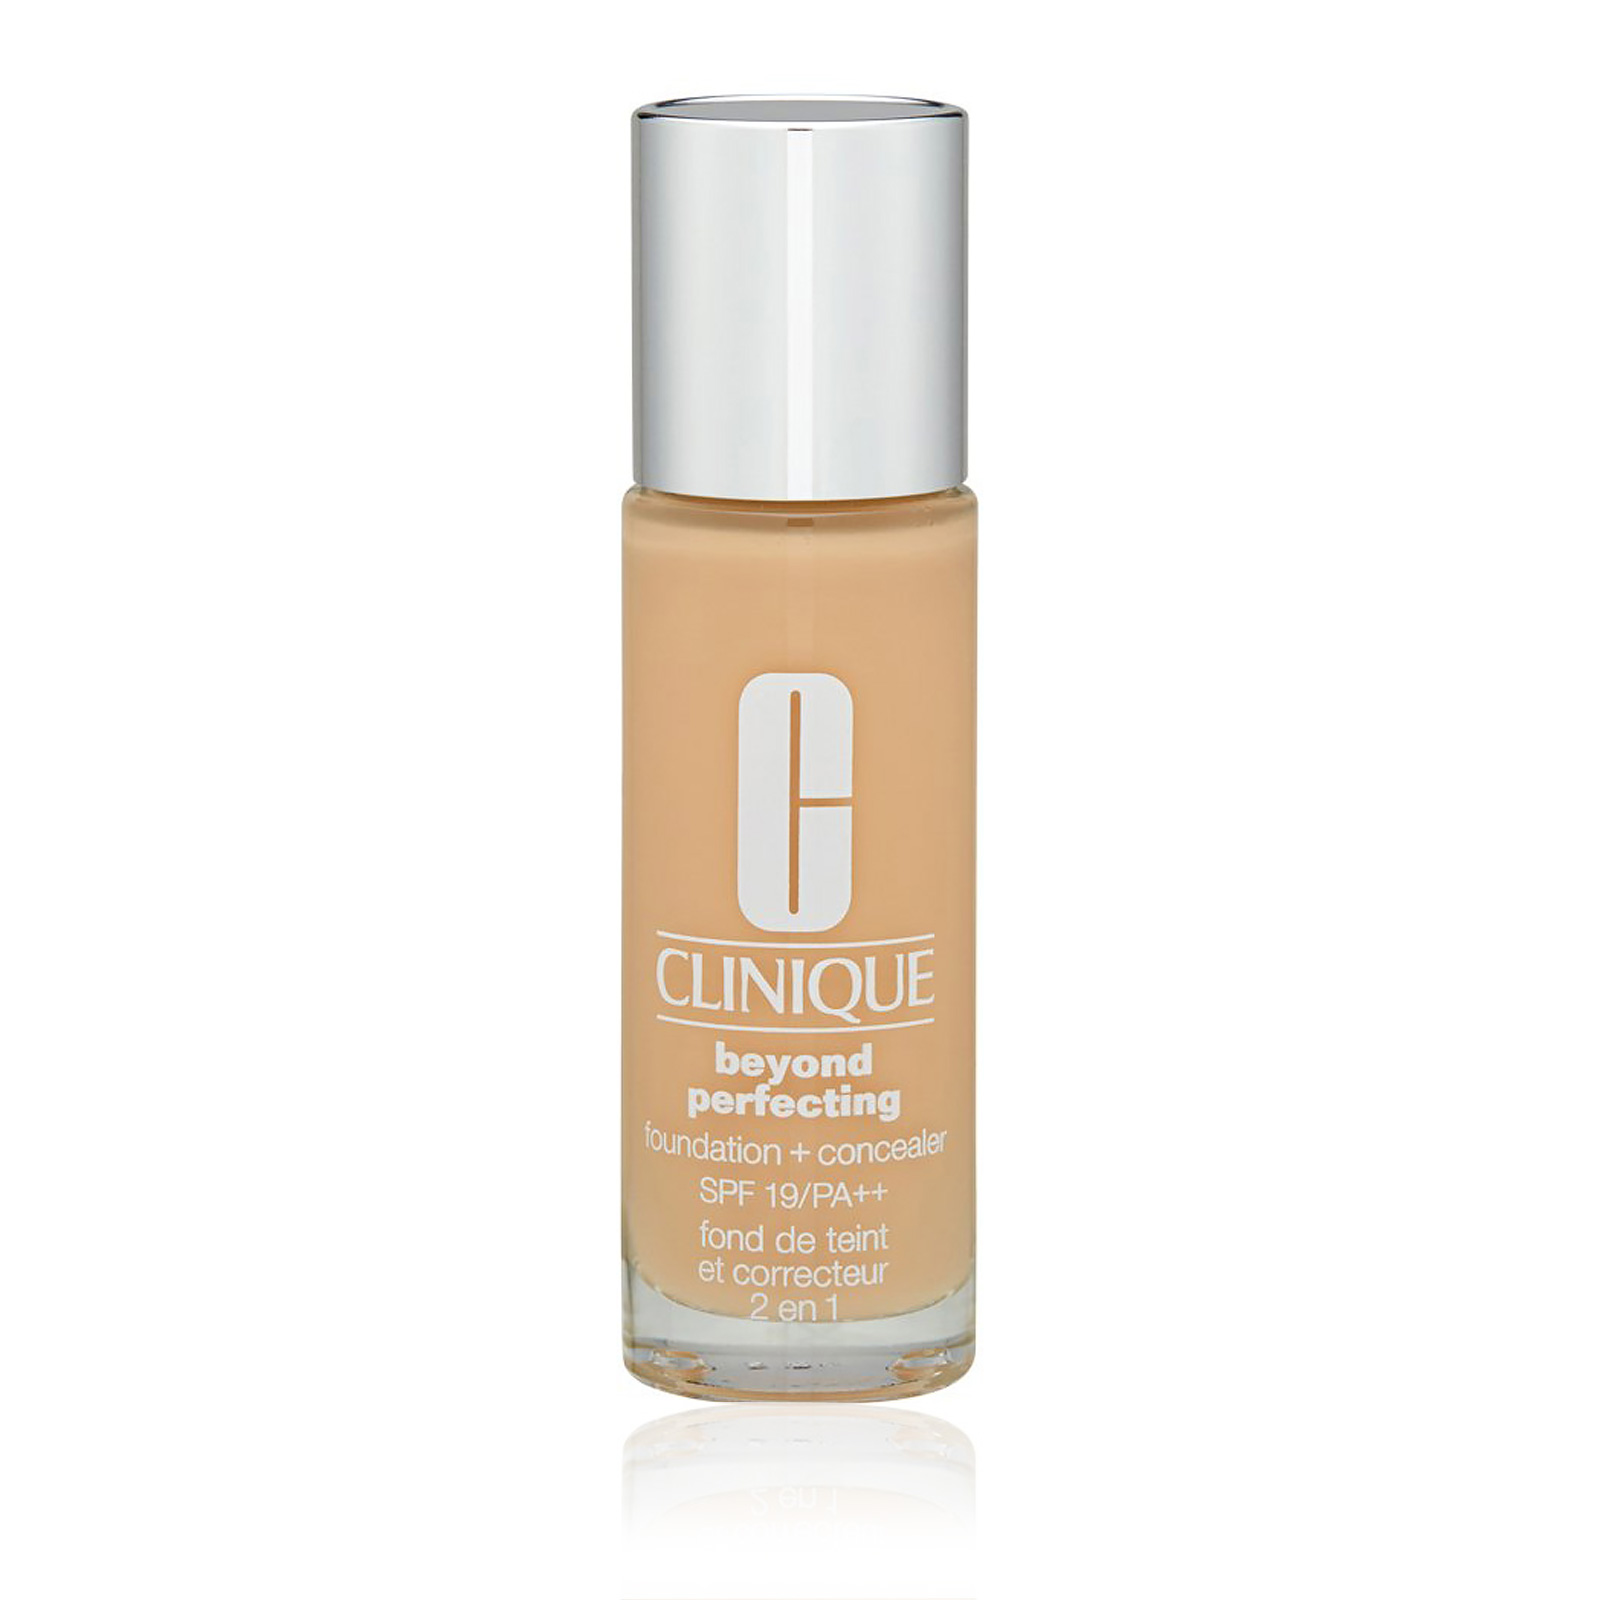 Beyond Perfecting Foundation + Concealer SPF19 / PA++